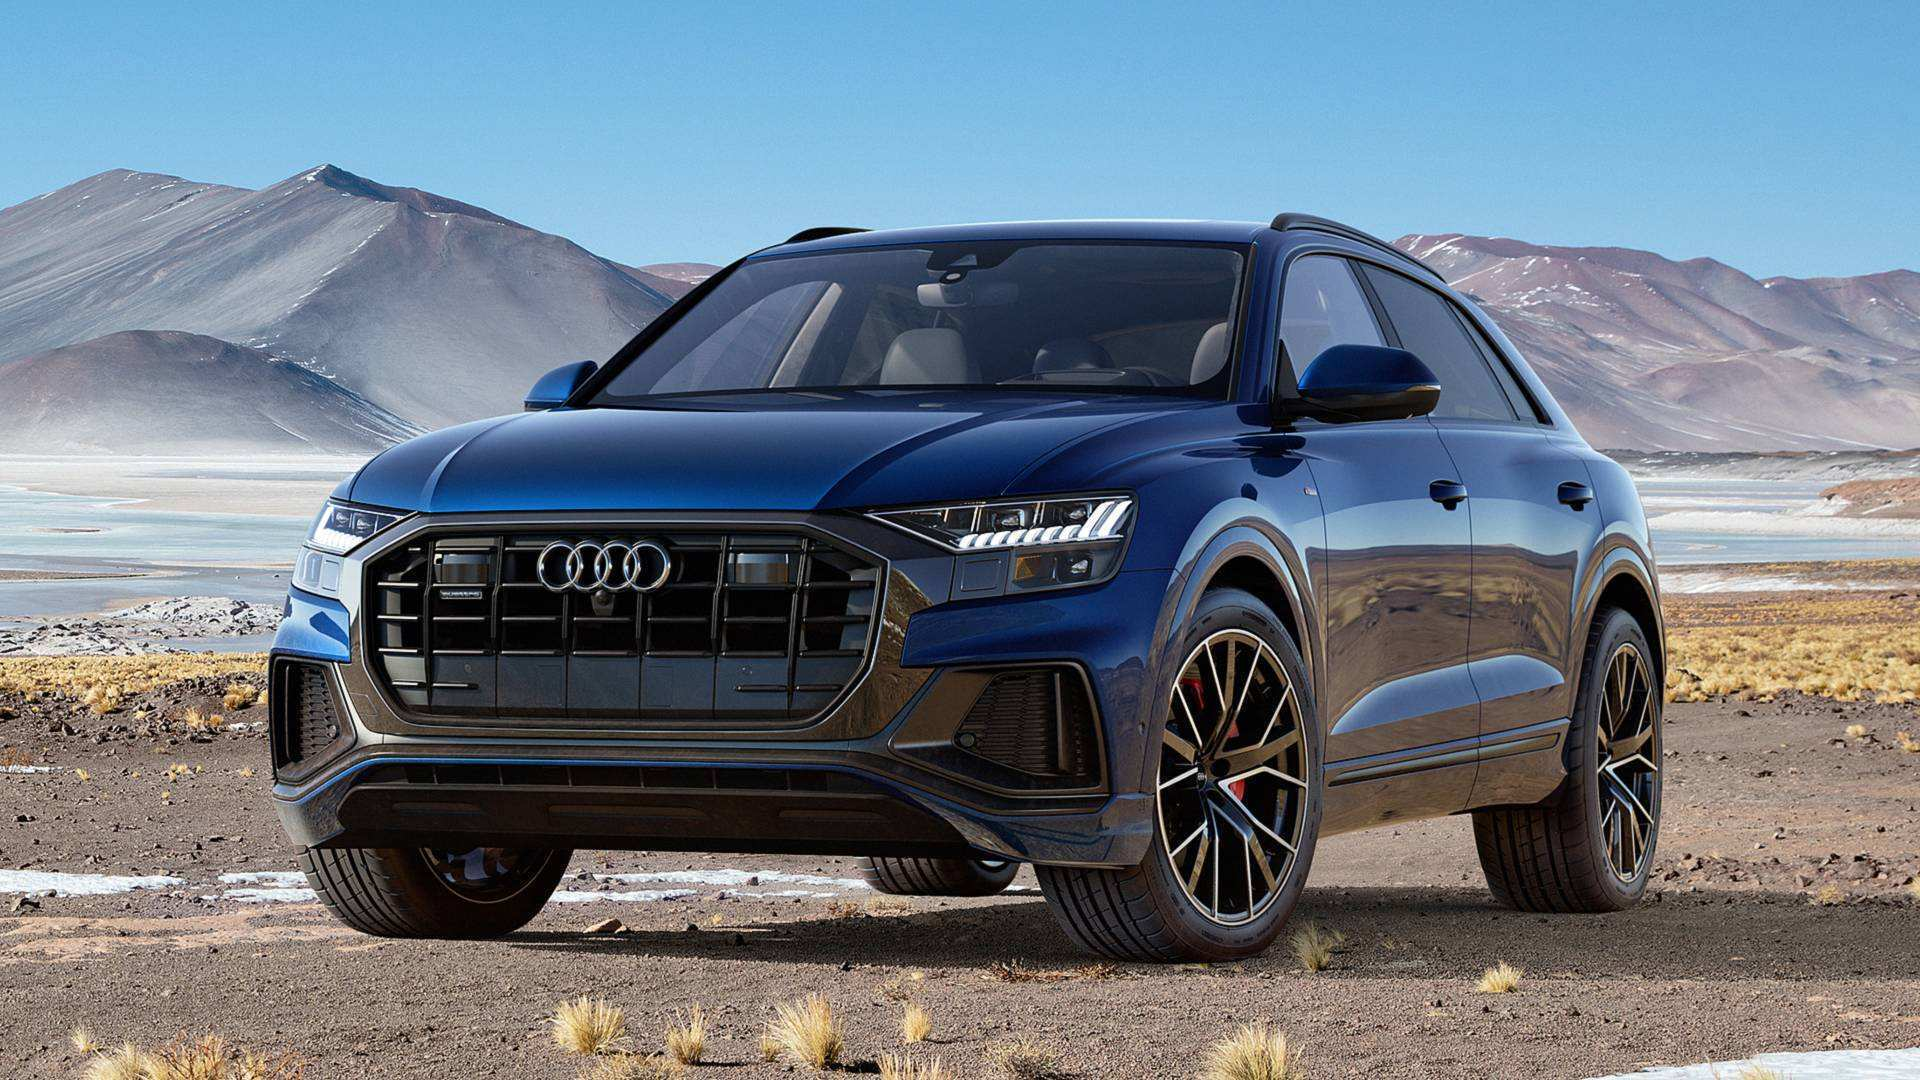 18 The Audi 2019 Q8 Price Interior Exterior and Interior for Audi 2019 Q8 Price Interior